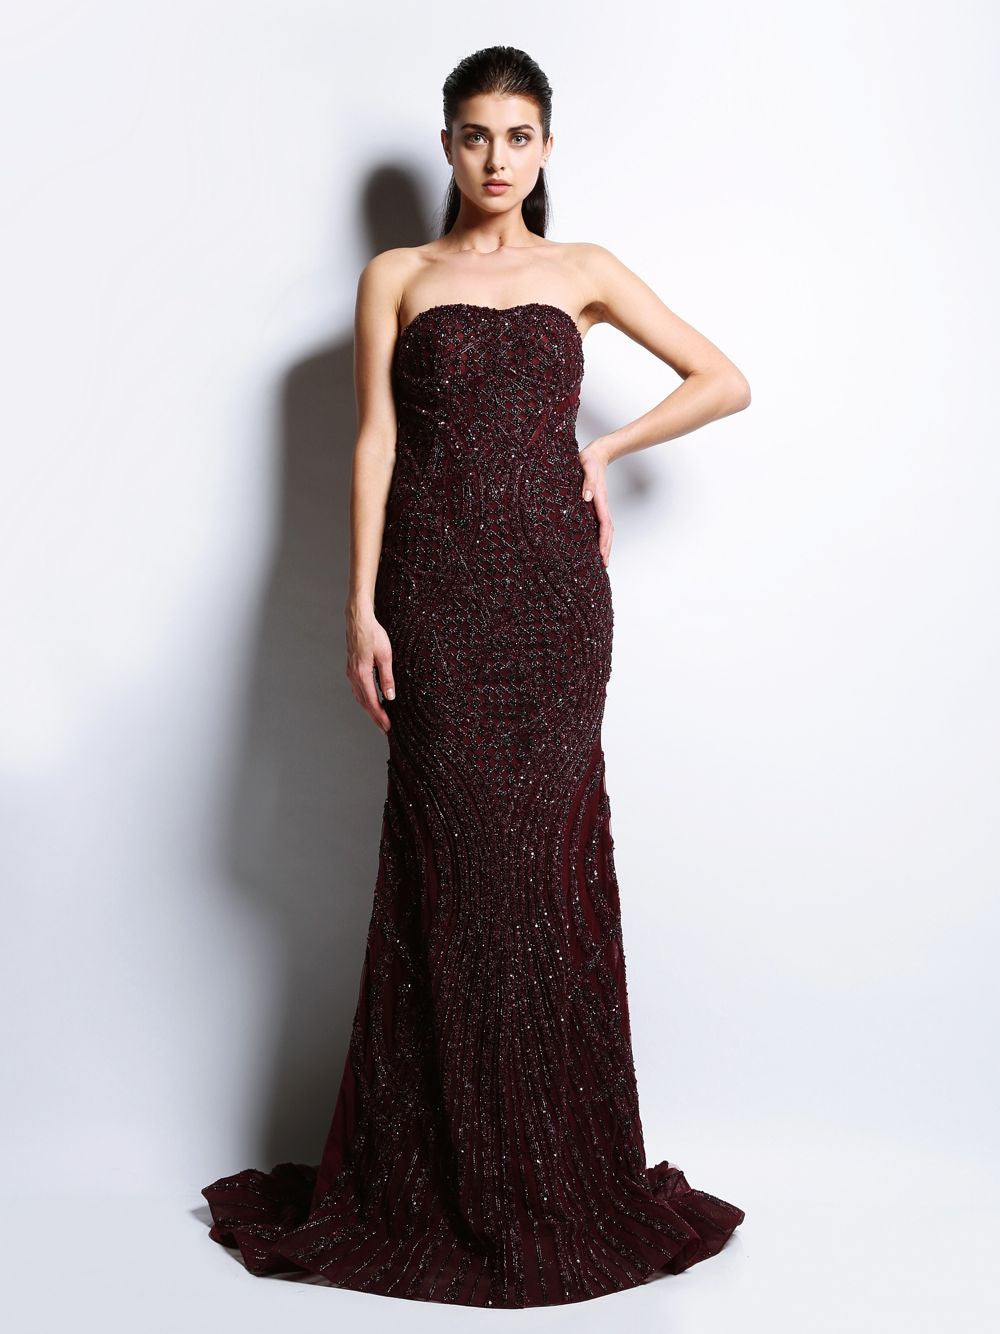 Full Sleeve Embroidered Gown Shantel